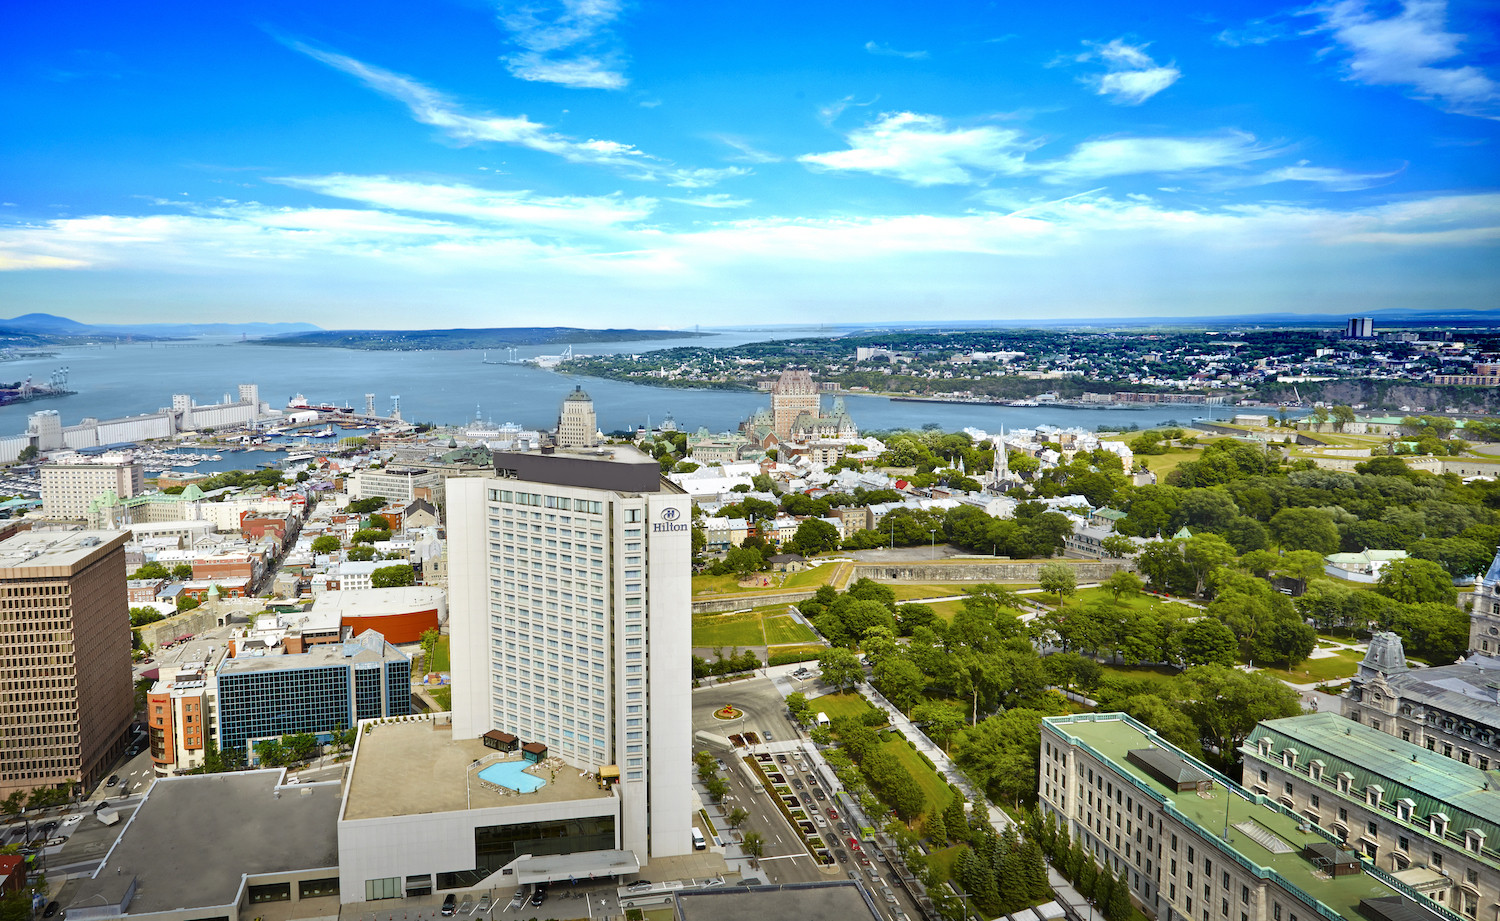 Hilton Quebec, located in the heart of it all!